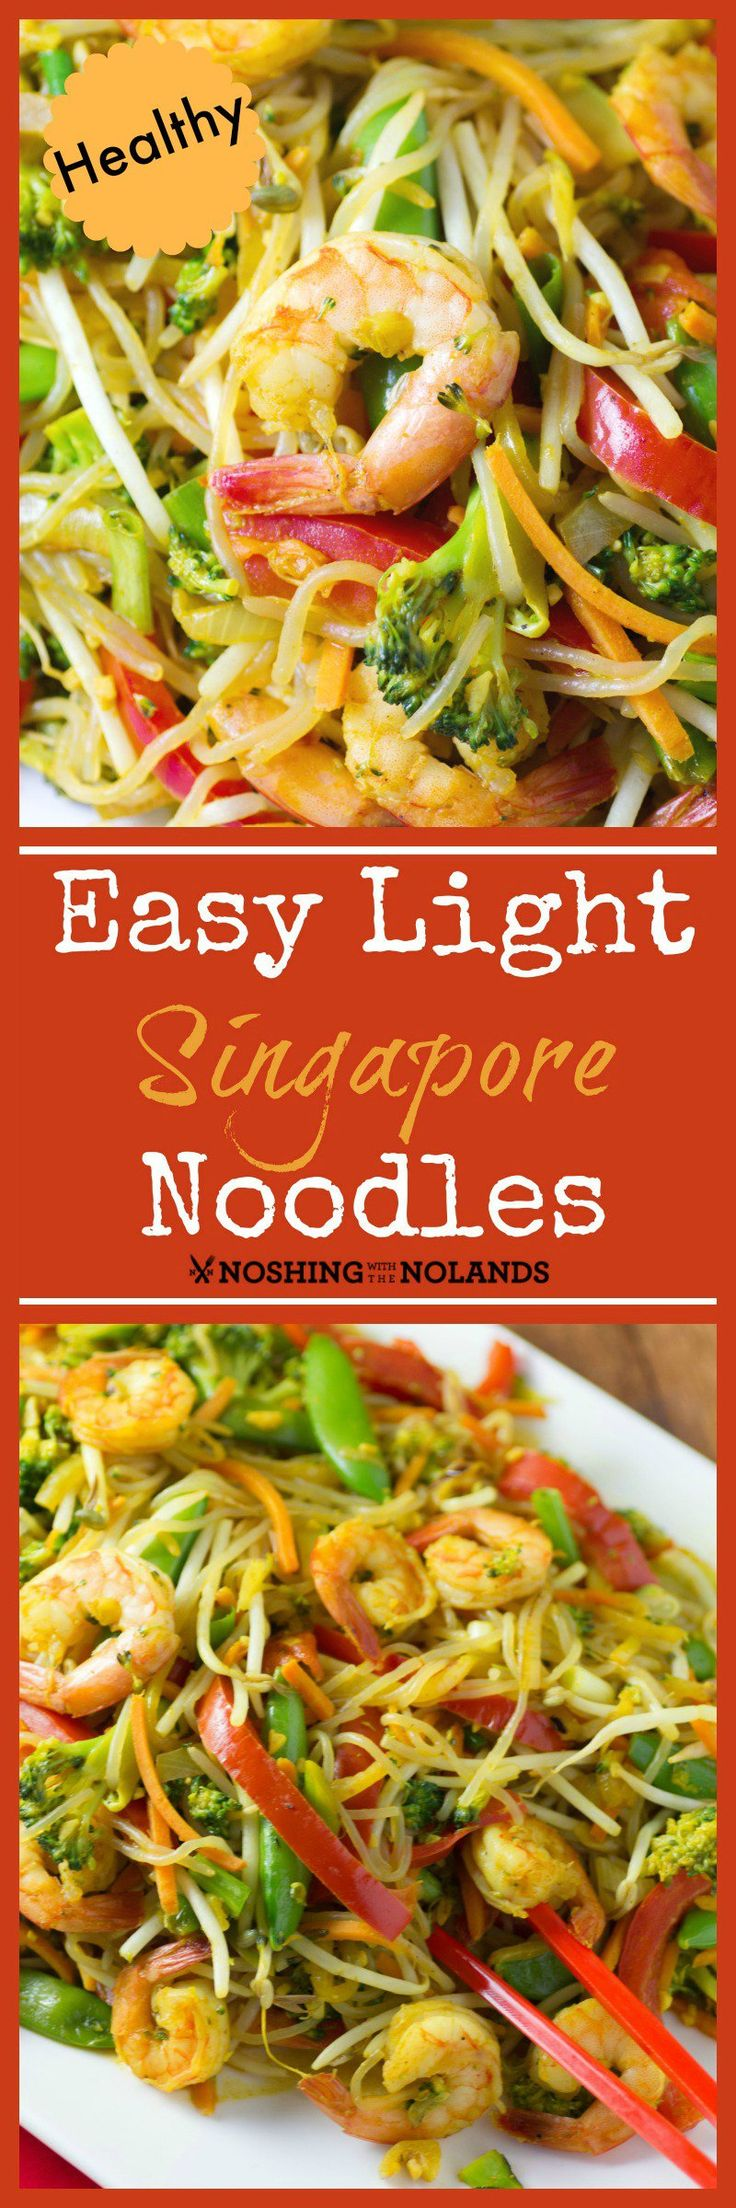 Easy Light Singapore Noodles by Noshing With The Nolands is an incredibly healthy dish which is quick to put together.  The zero calorie Shirataki Noodles just soak up the delectable flavors!